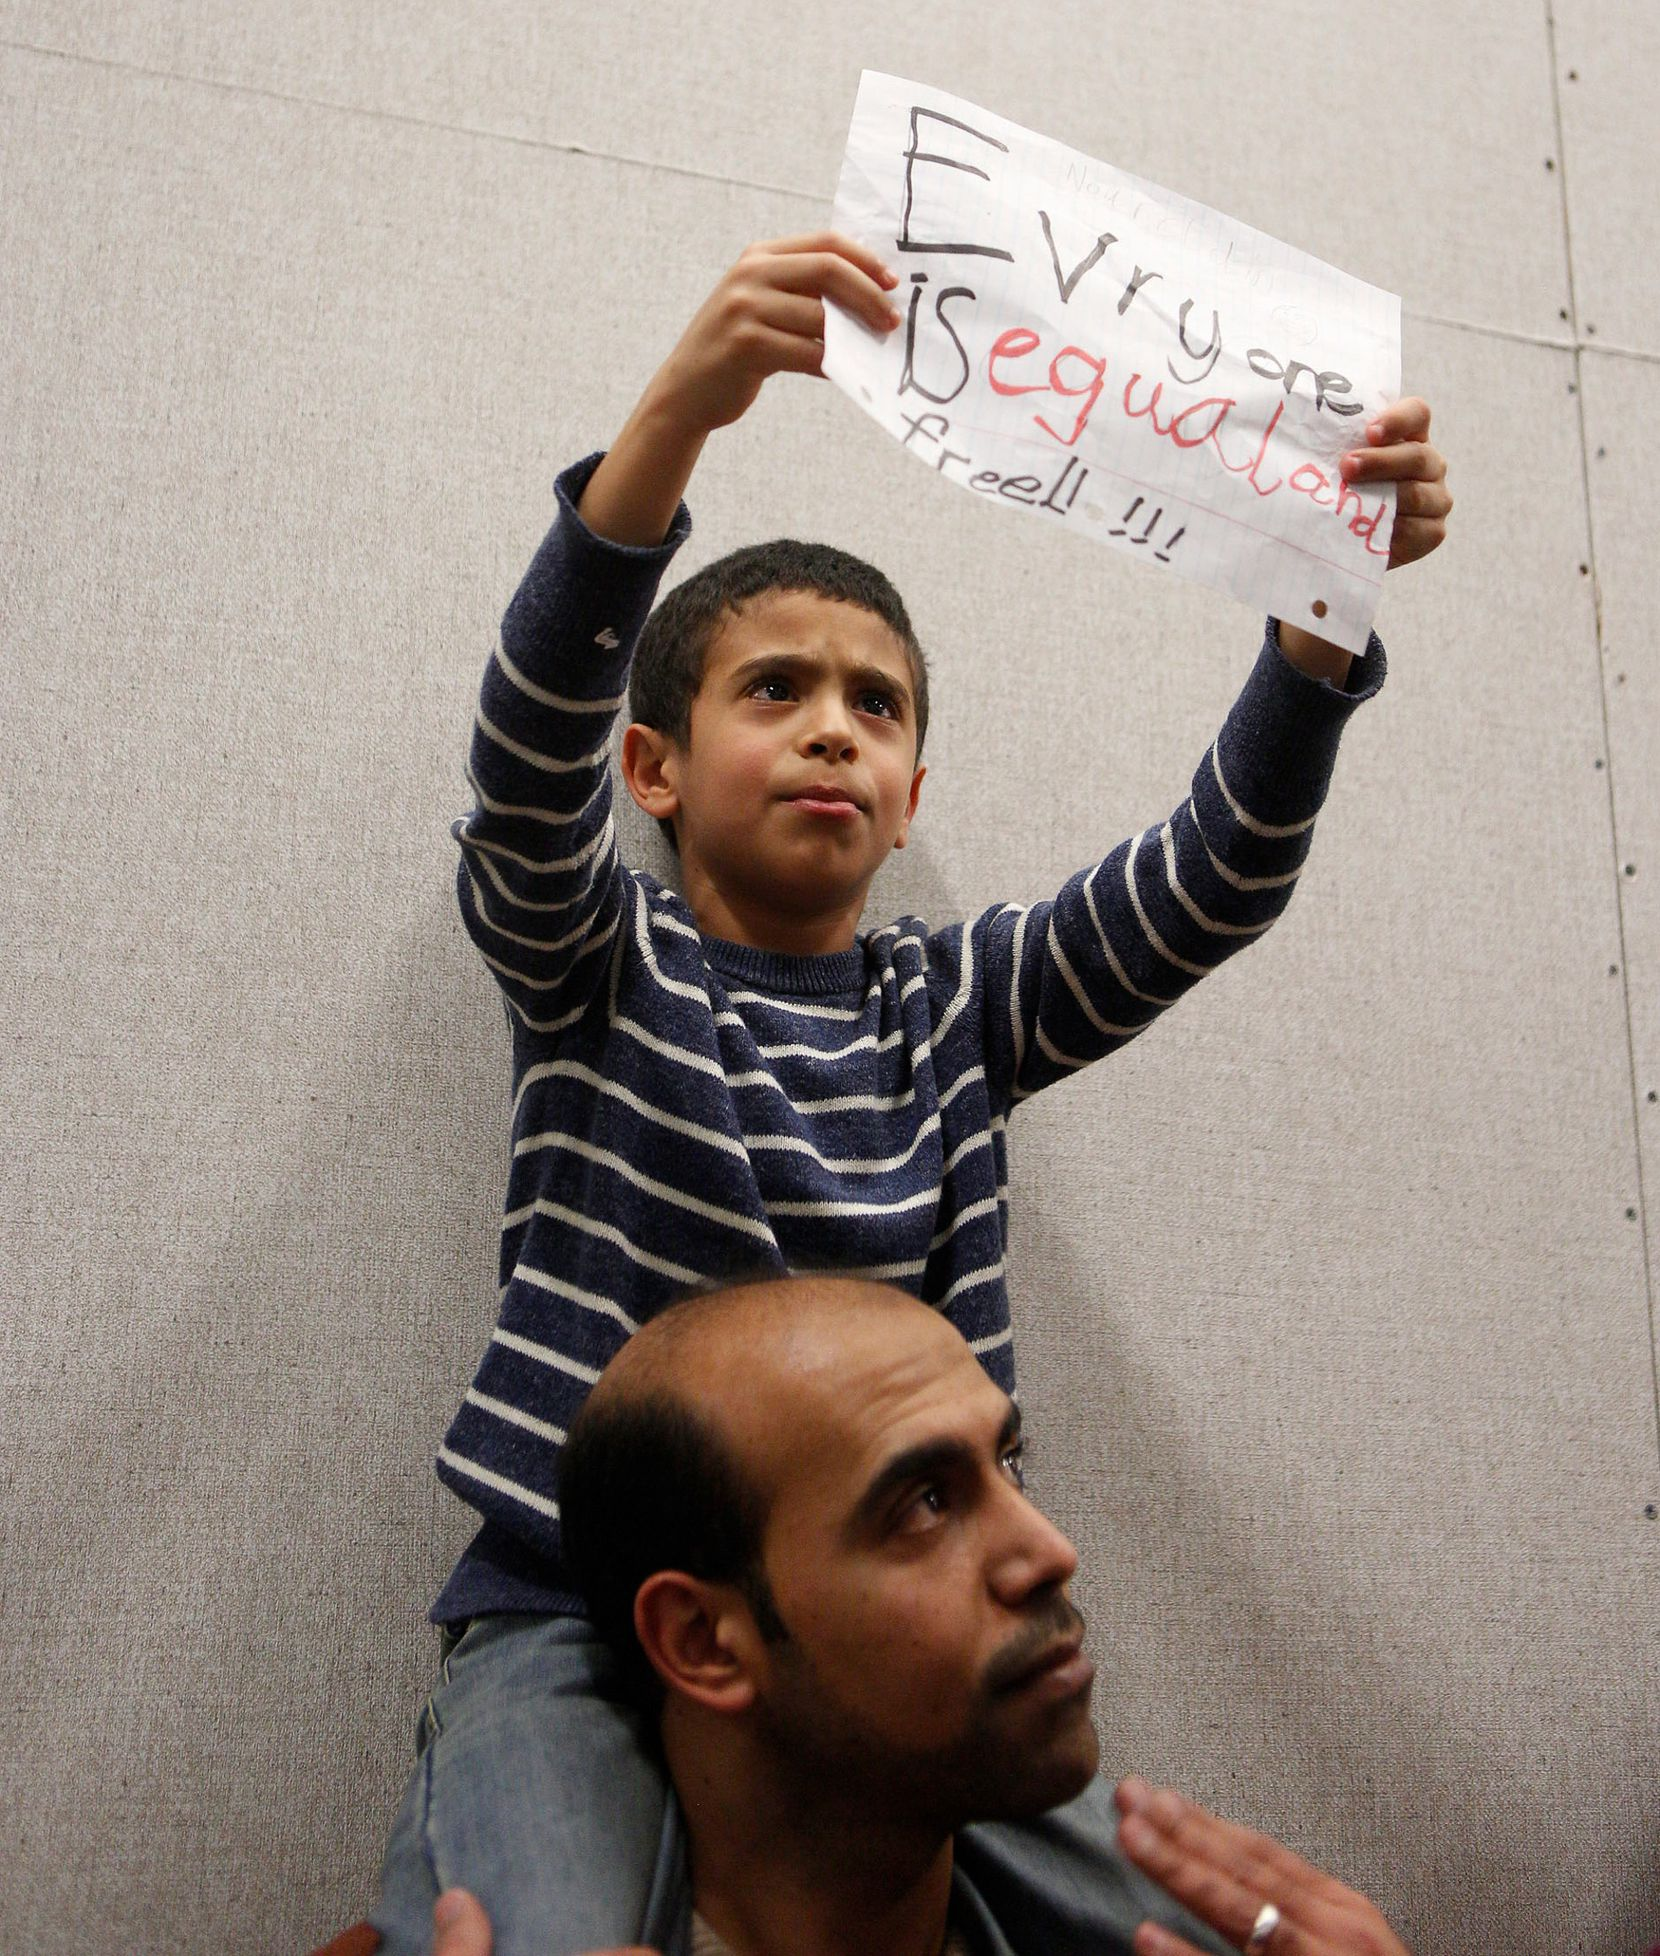 Mahmoud and his son Nour, 7, join the protest to denounce President Donald Trump's executive order that bans certain immigration, at Dallas-Fort Worth International Airport on January 28, 2017 in Dallas, Texas.